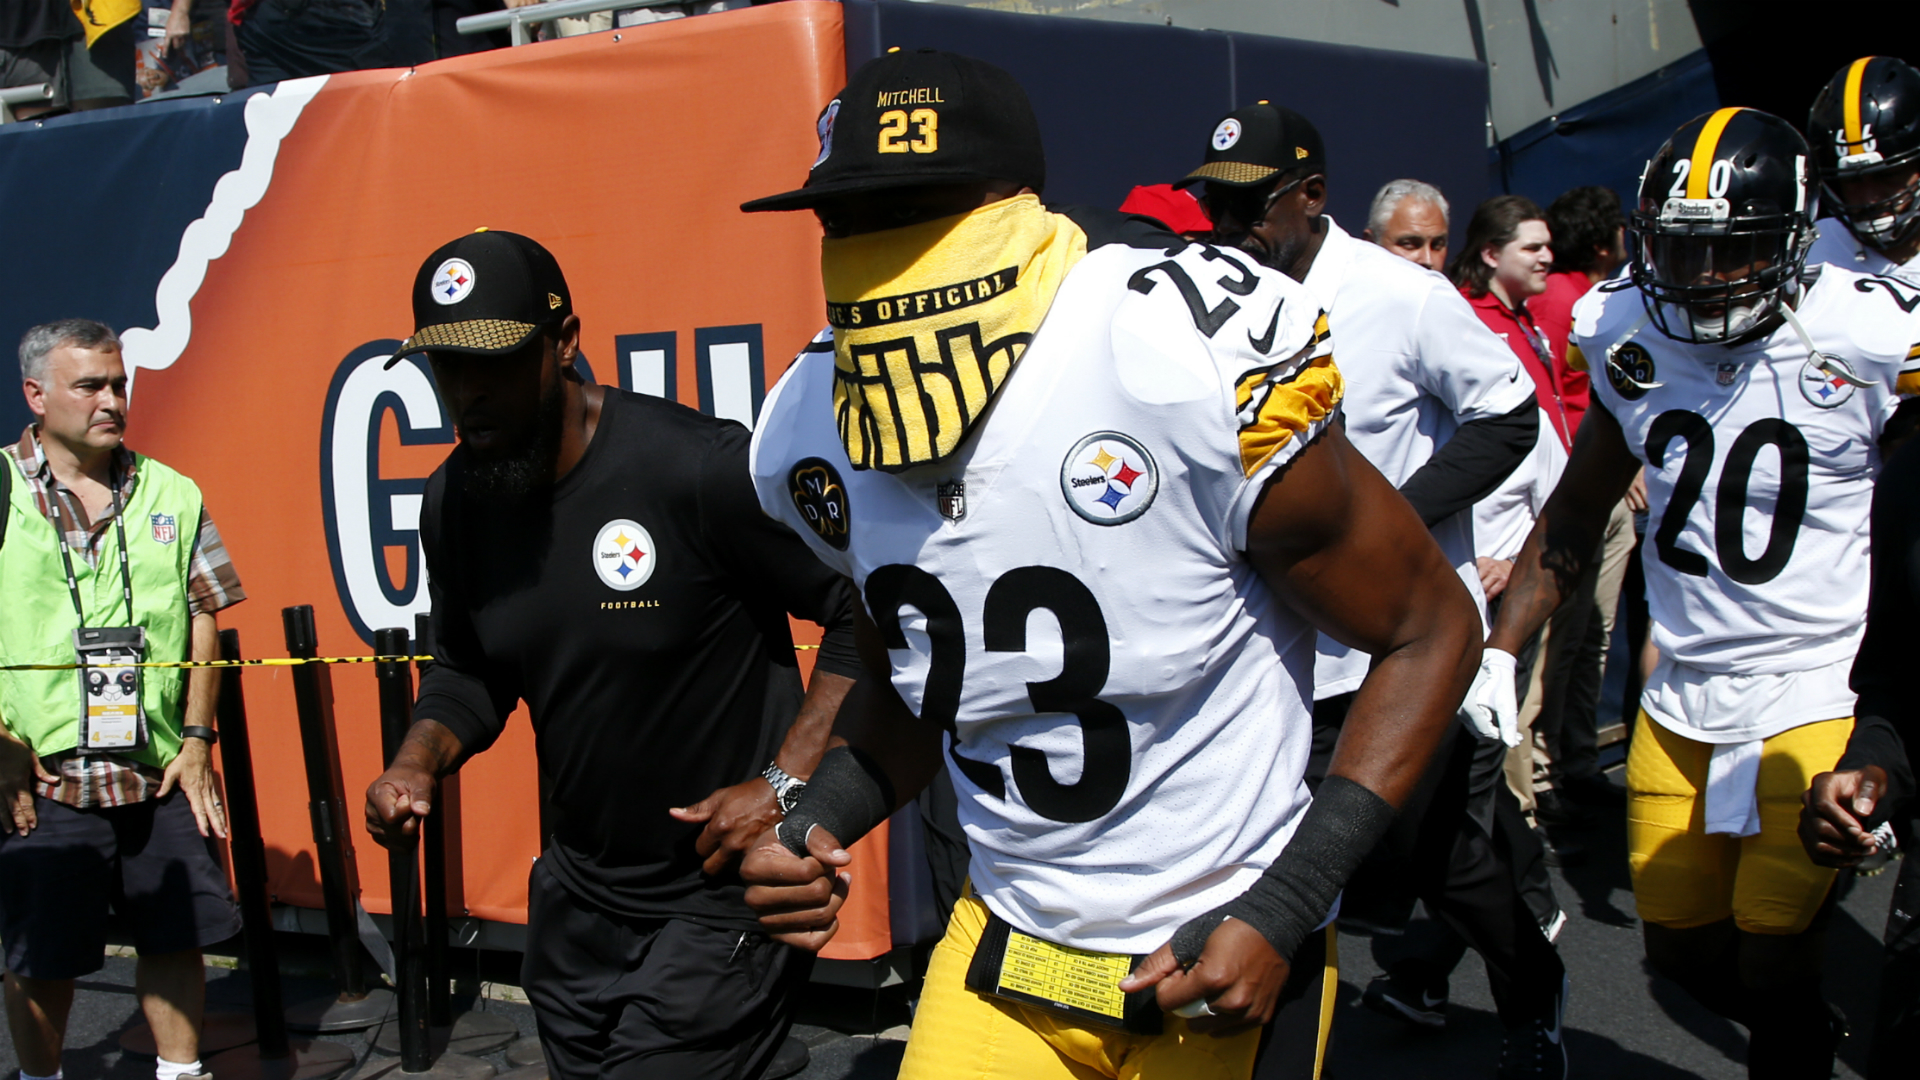 National Football League suspends JuJu Smith-Schuster, George Iloka one game each for hits